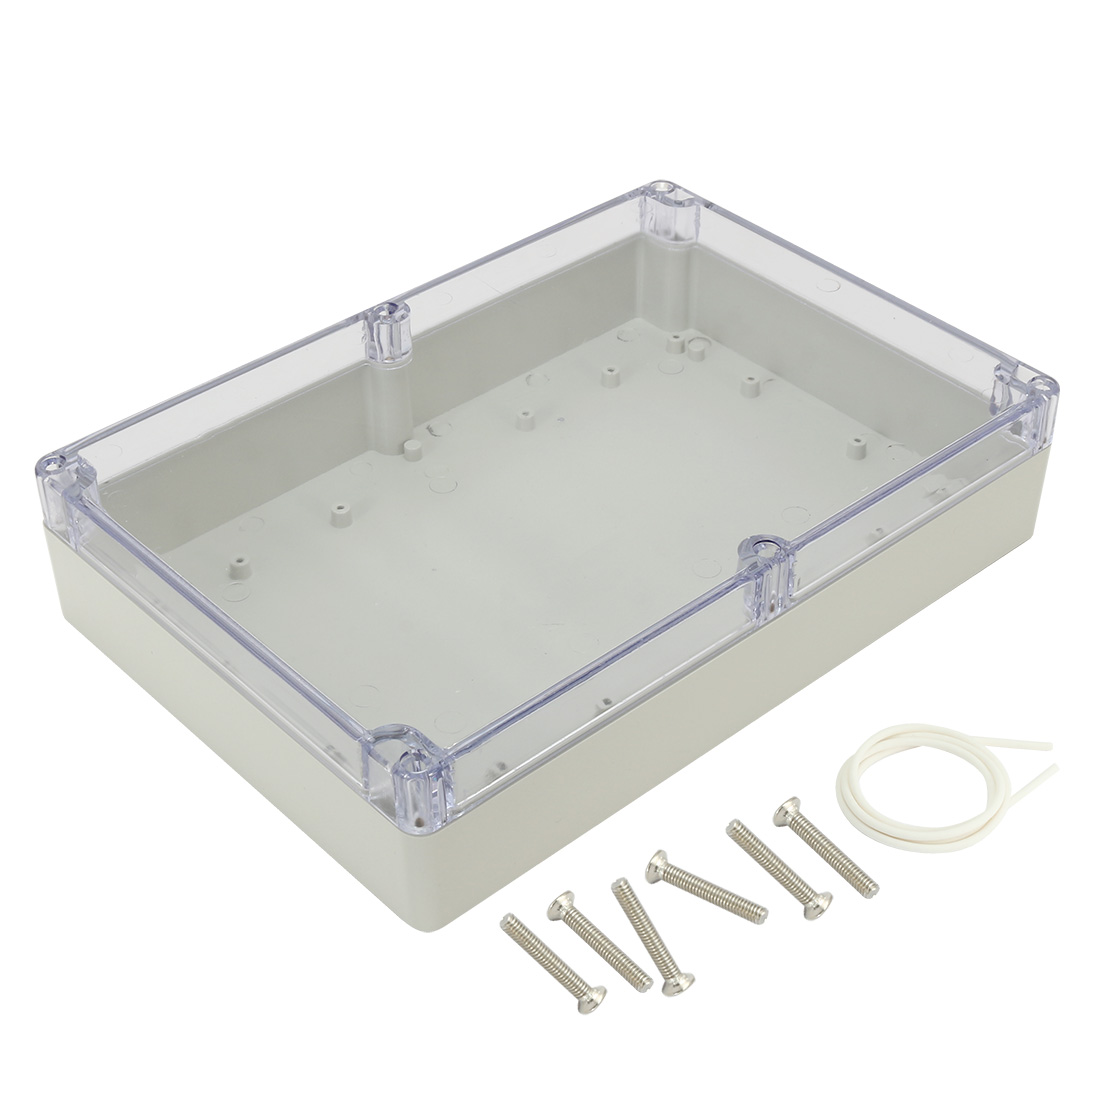 "10.4""x7.2""x2.4"" ABS Junction Box Electric Project Enclosure Clear"